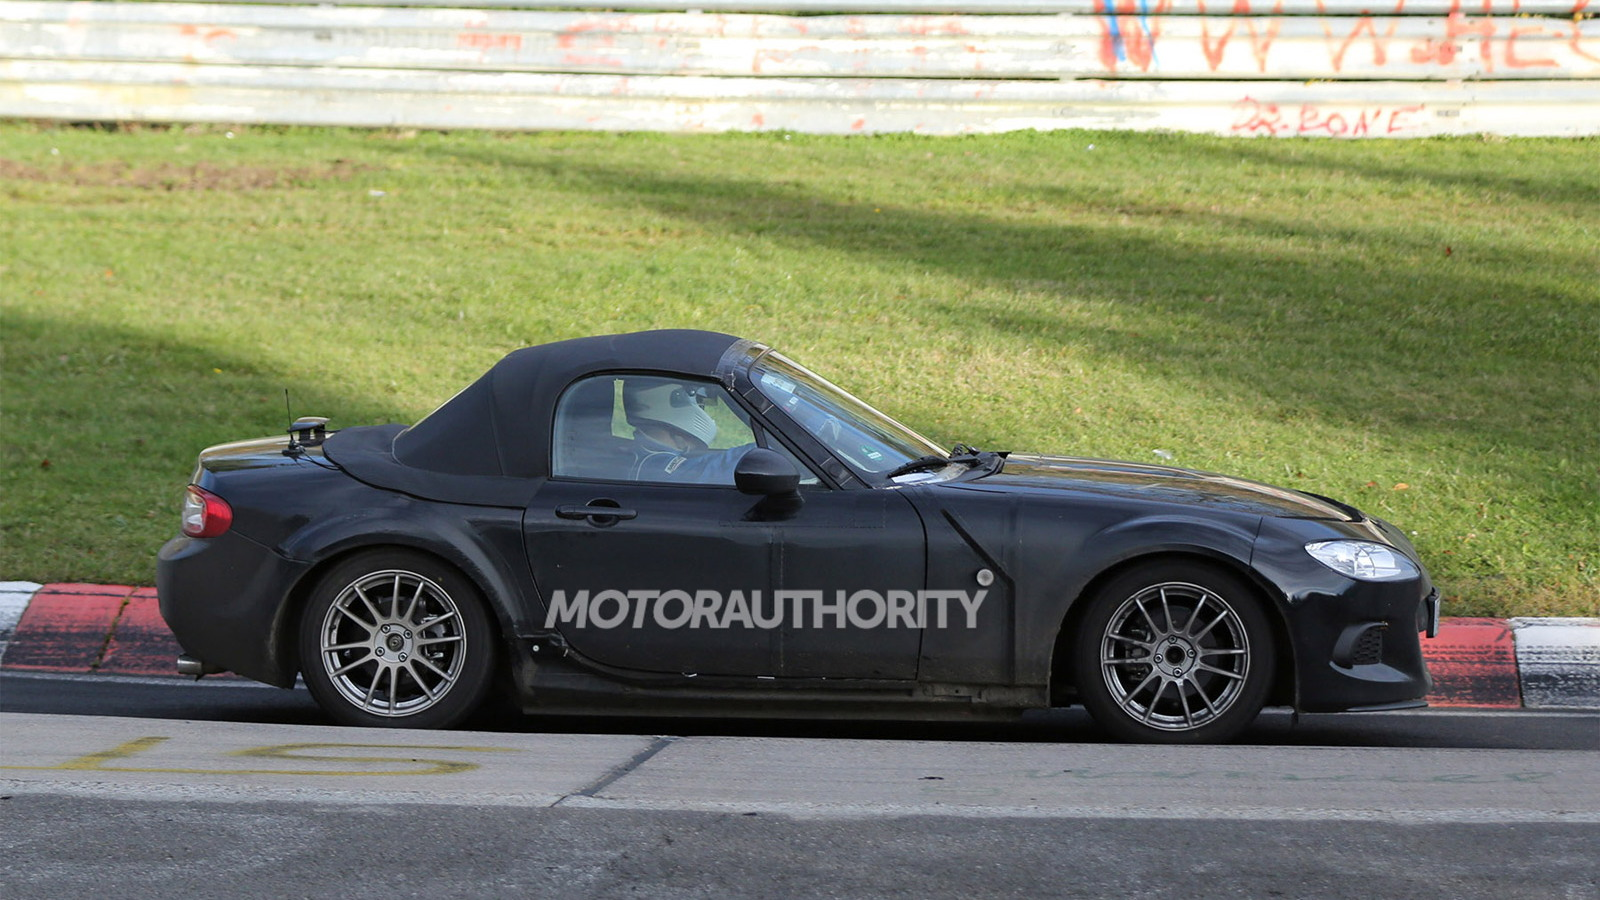 2015 Mazda MX-5 Miata test mule spy shots